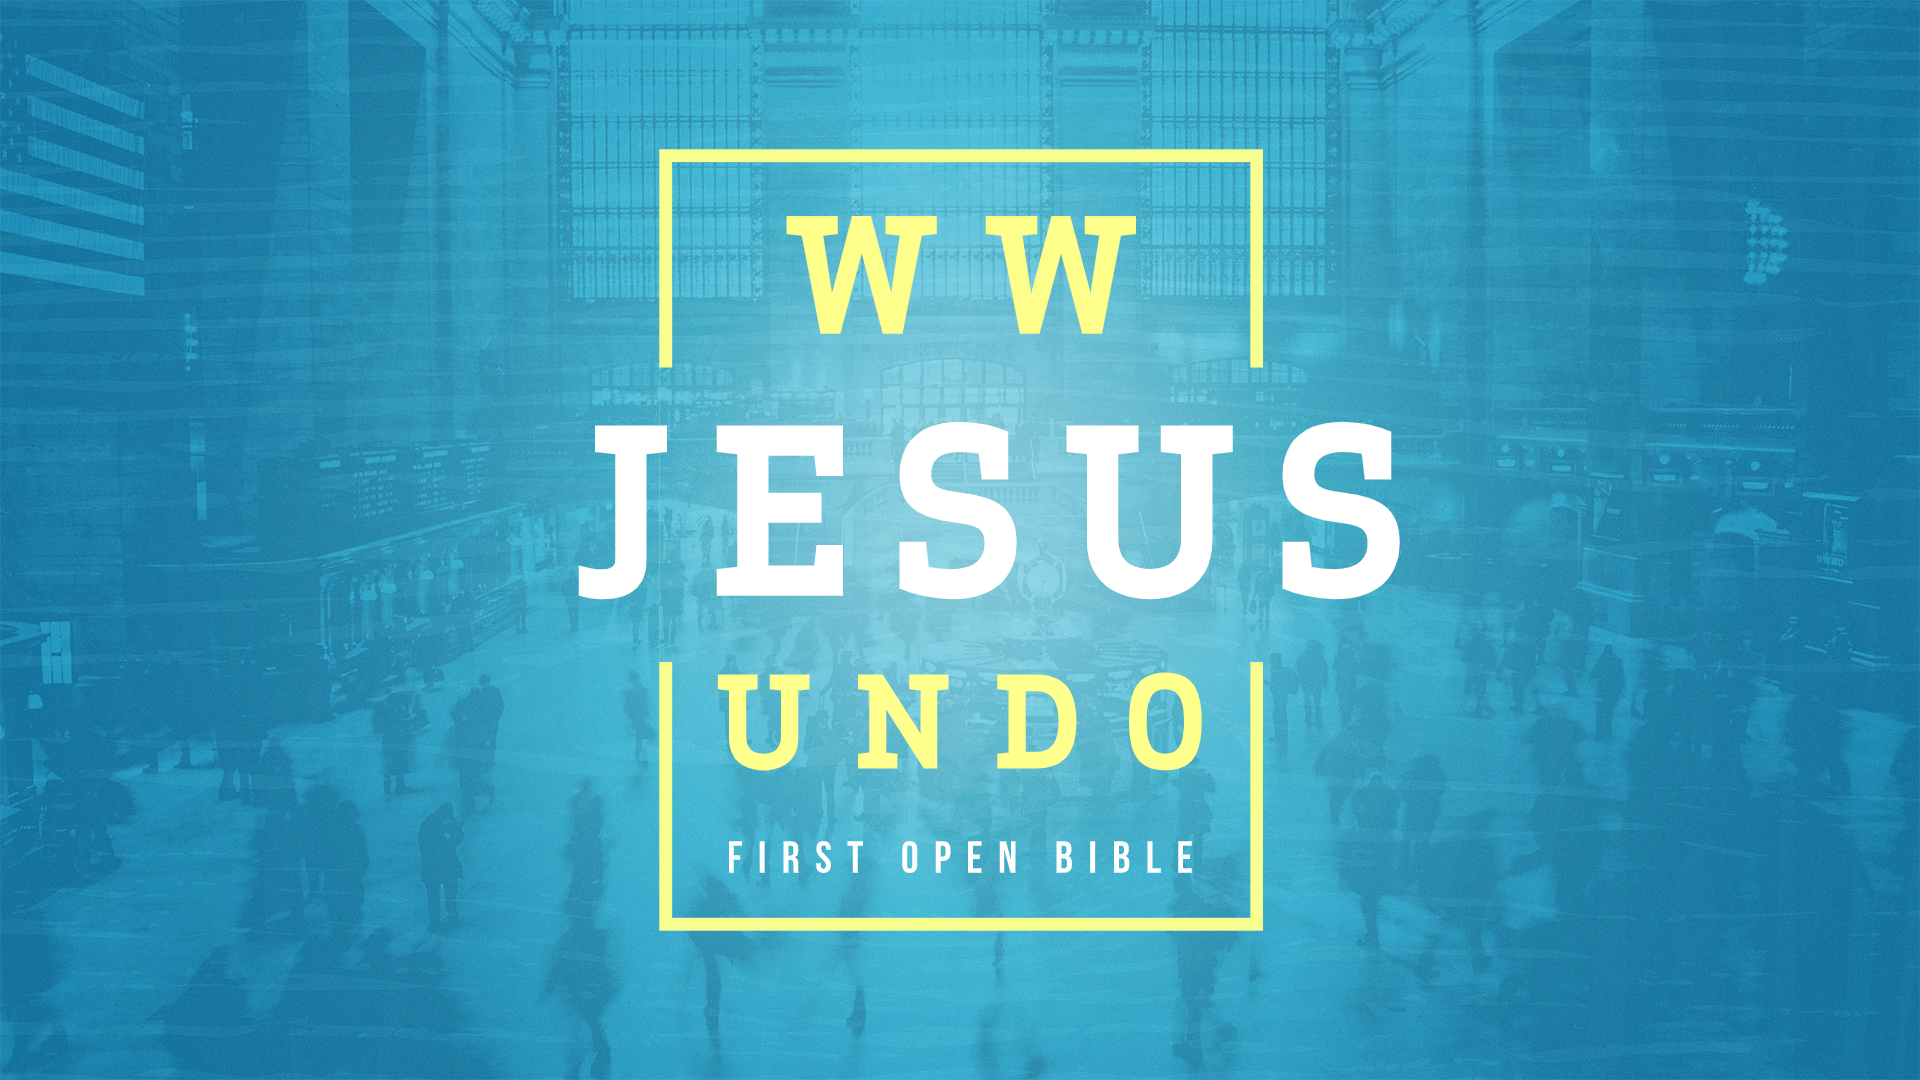 What Would Jesus Undo – Best Use of Time